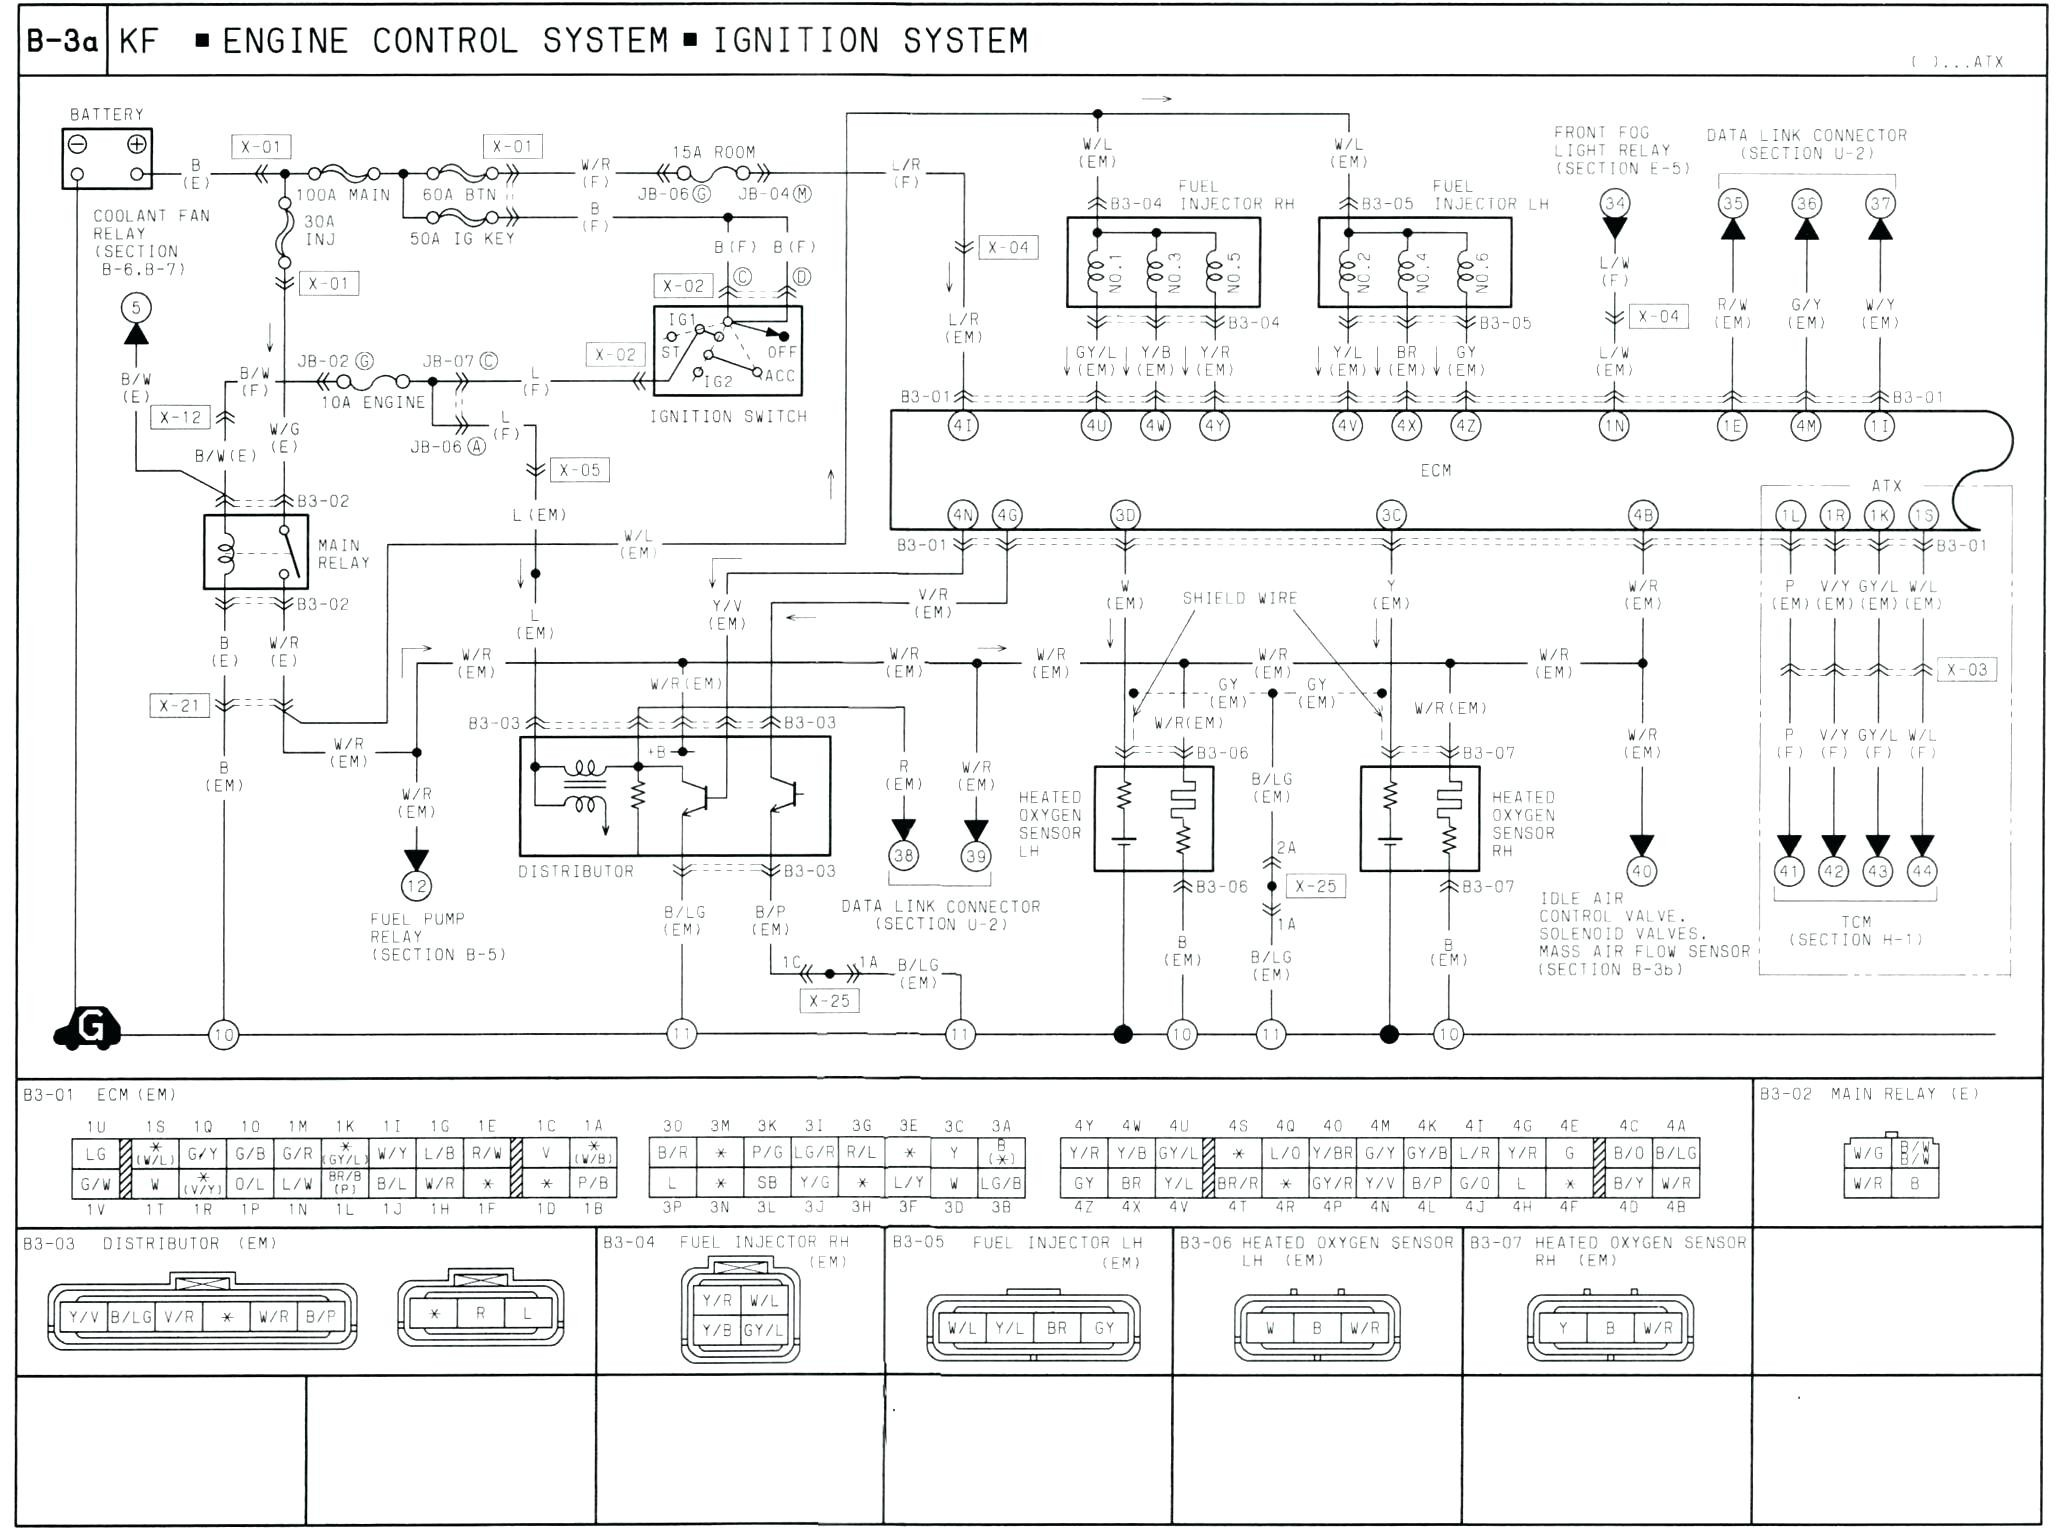 1991 Mazda Miata Fuse Box Wiring Diagram Diagrams 91 Panel Detailed Schematics 1990 Location